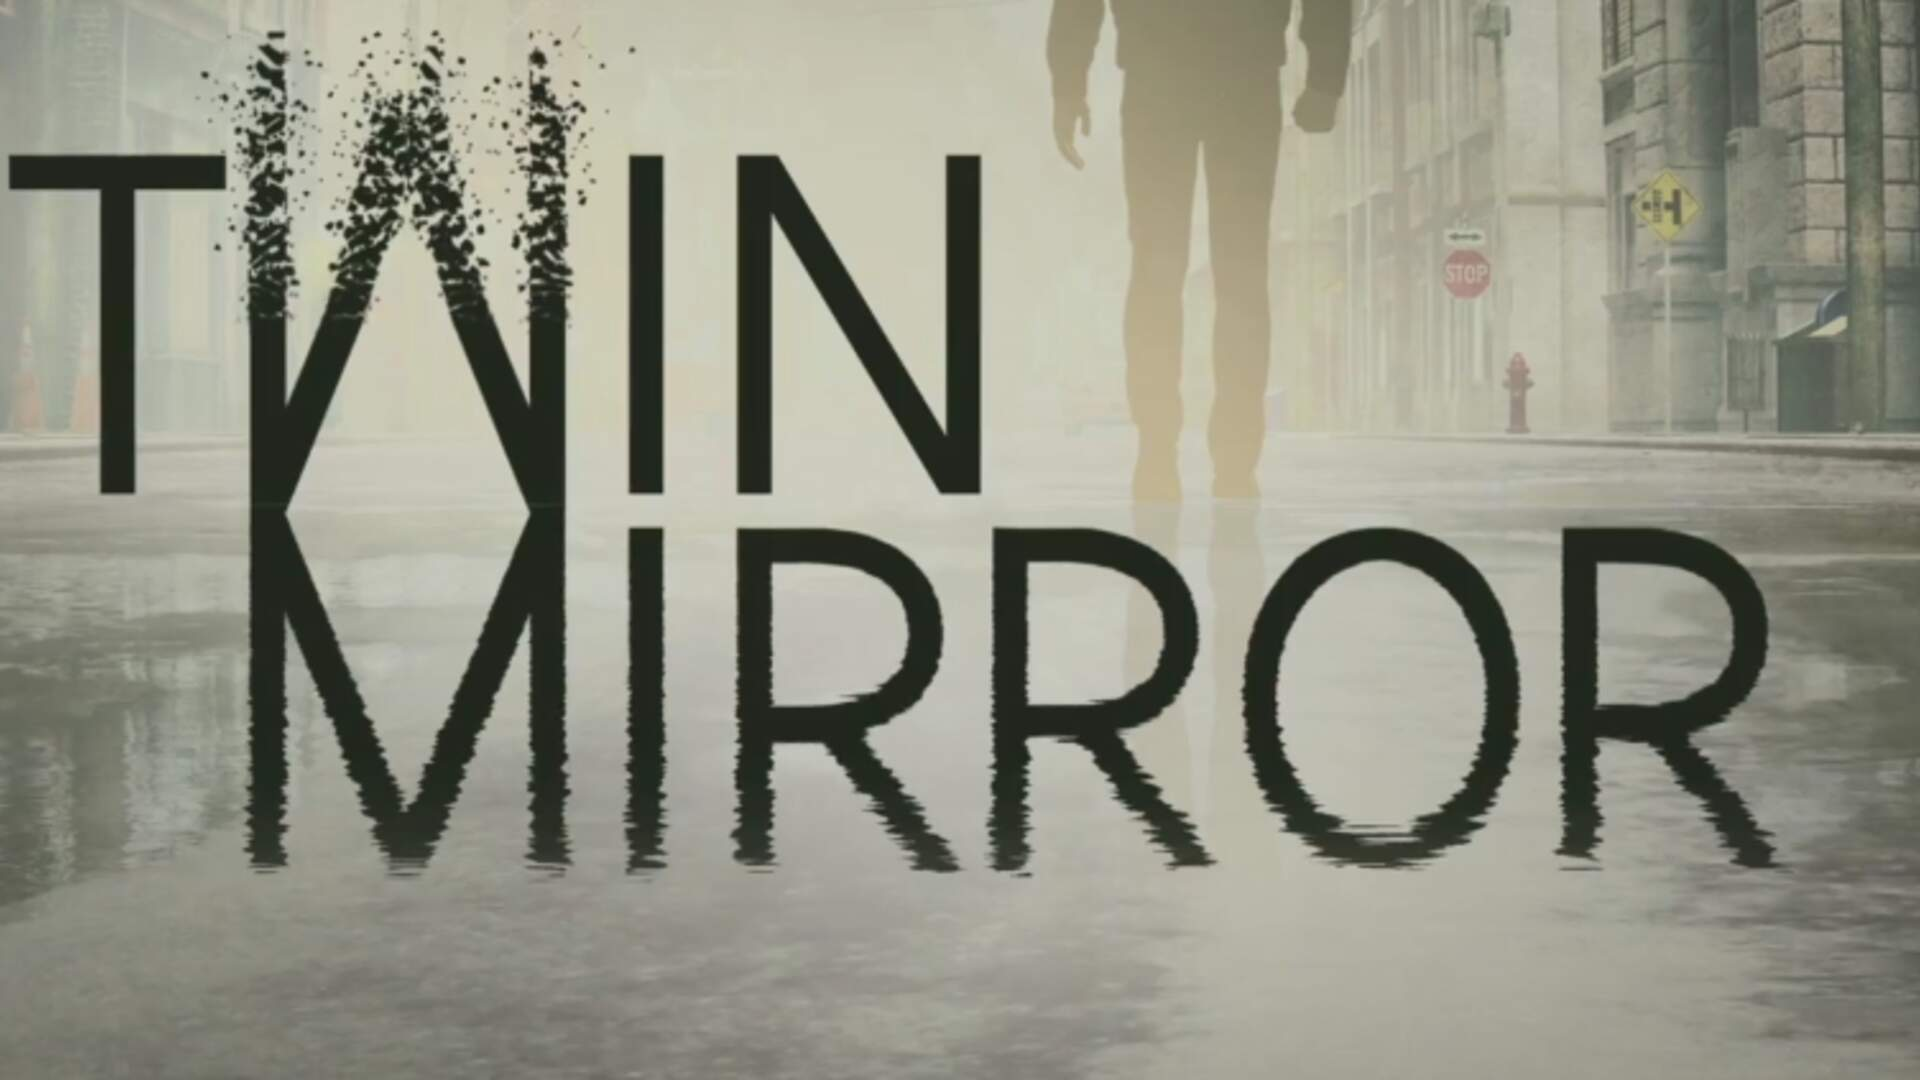 Life is Strange Studio Announces Trippy New Mystery Game, Twin Mirror for PS4, Xbox One, and PC